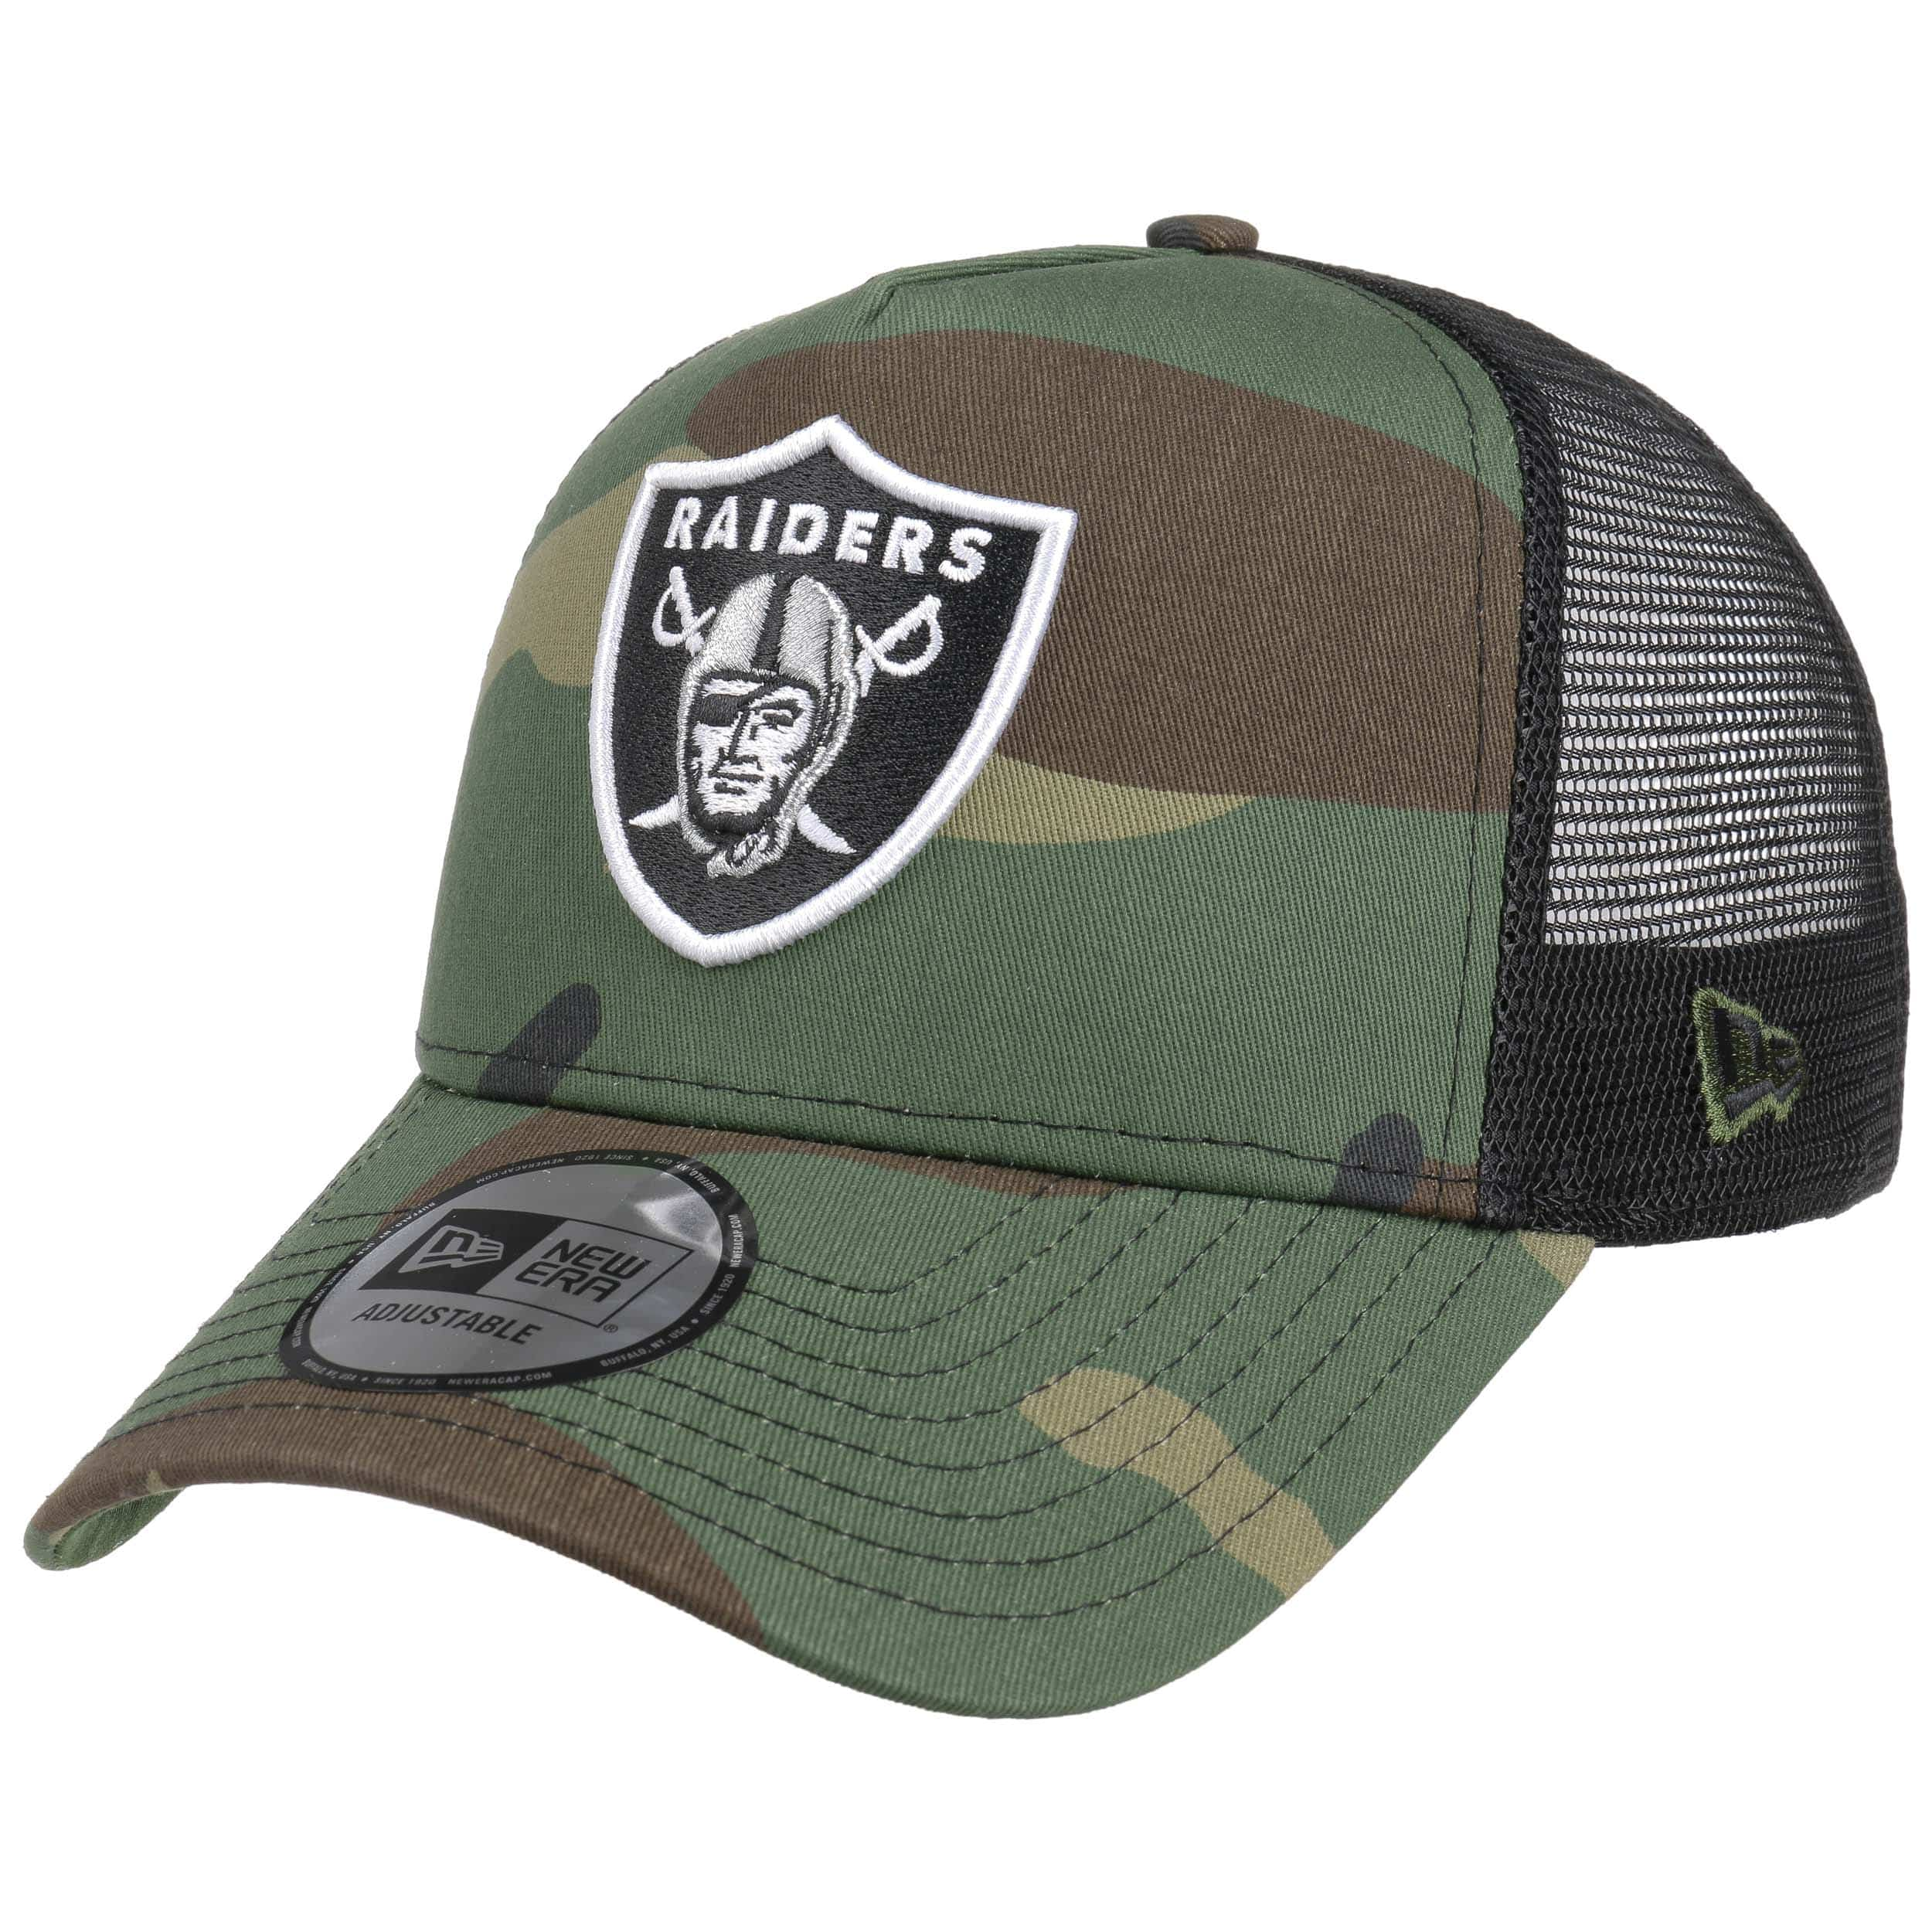 c7c15631a3 Camo Team Raiders Trucker Cap. by New Era